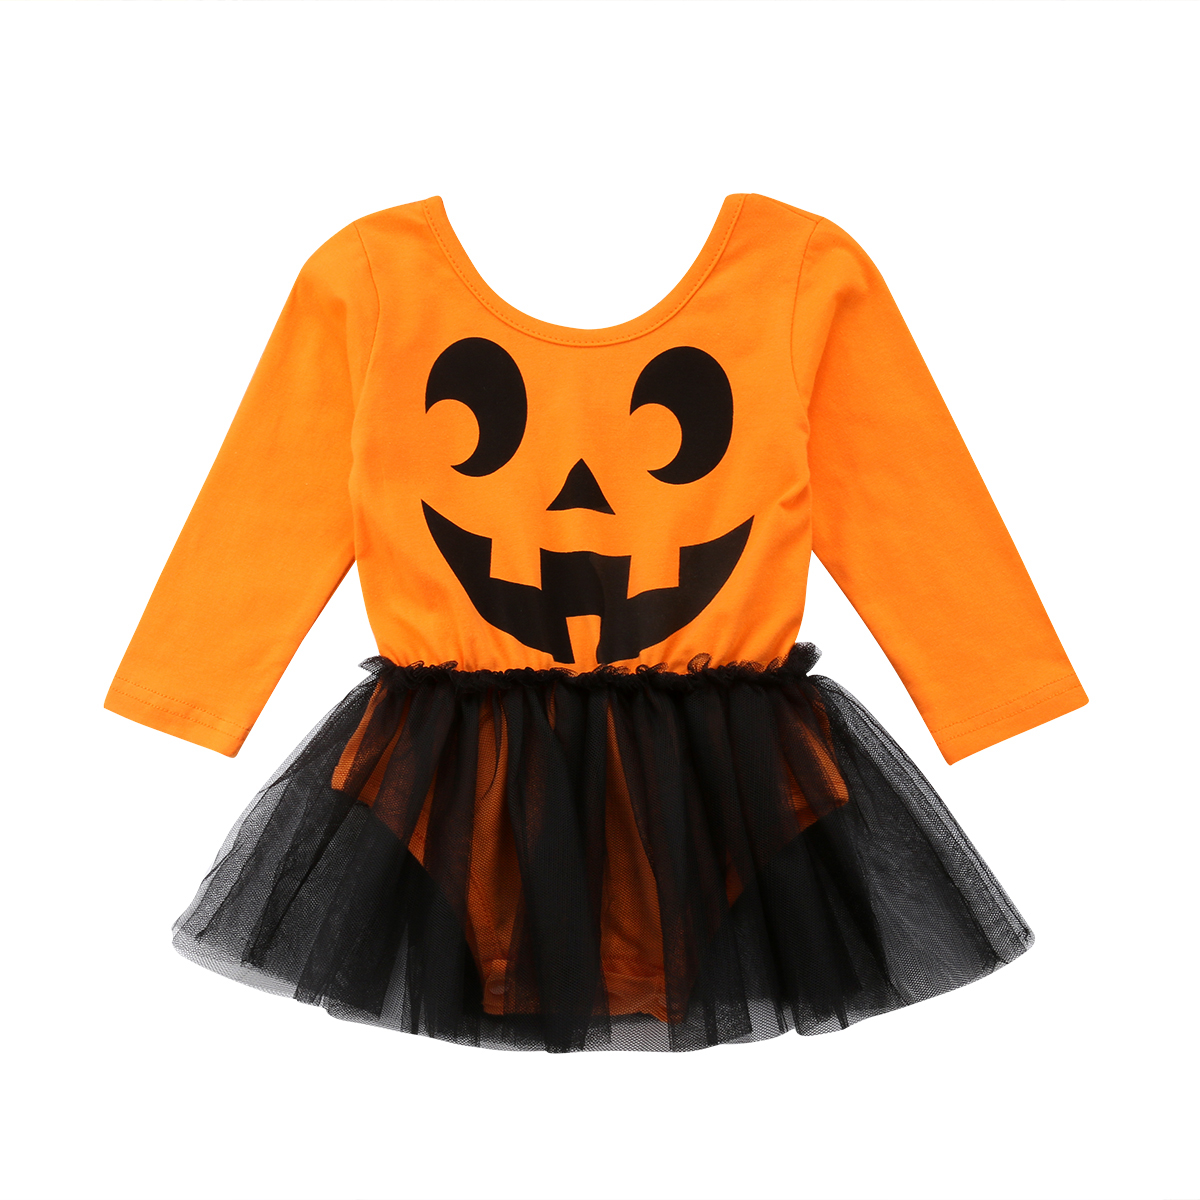 2018 Newborn Baby Girl Halloween Clothes Long Sleeve Tutu Tulle Skirted   Romper   Jumpsuit Outfits Party Costume